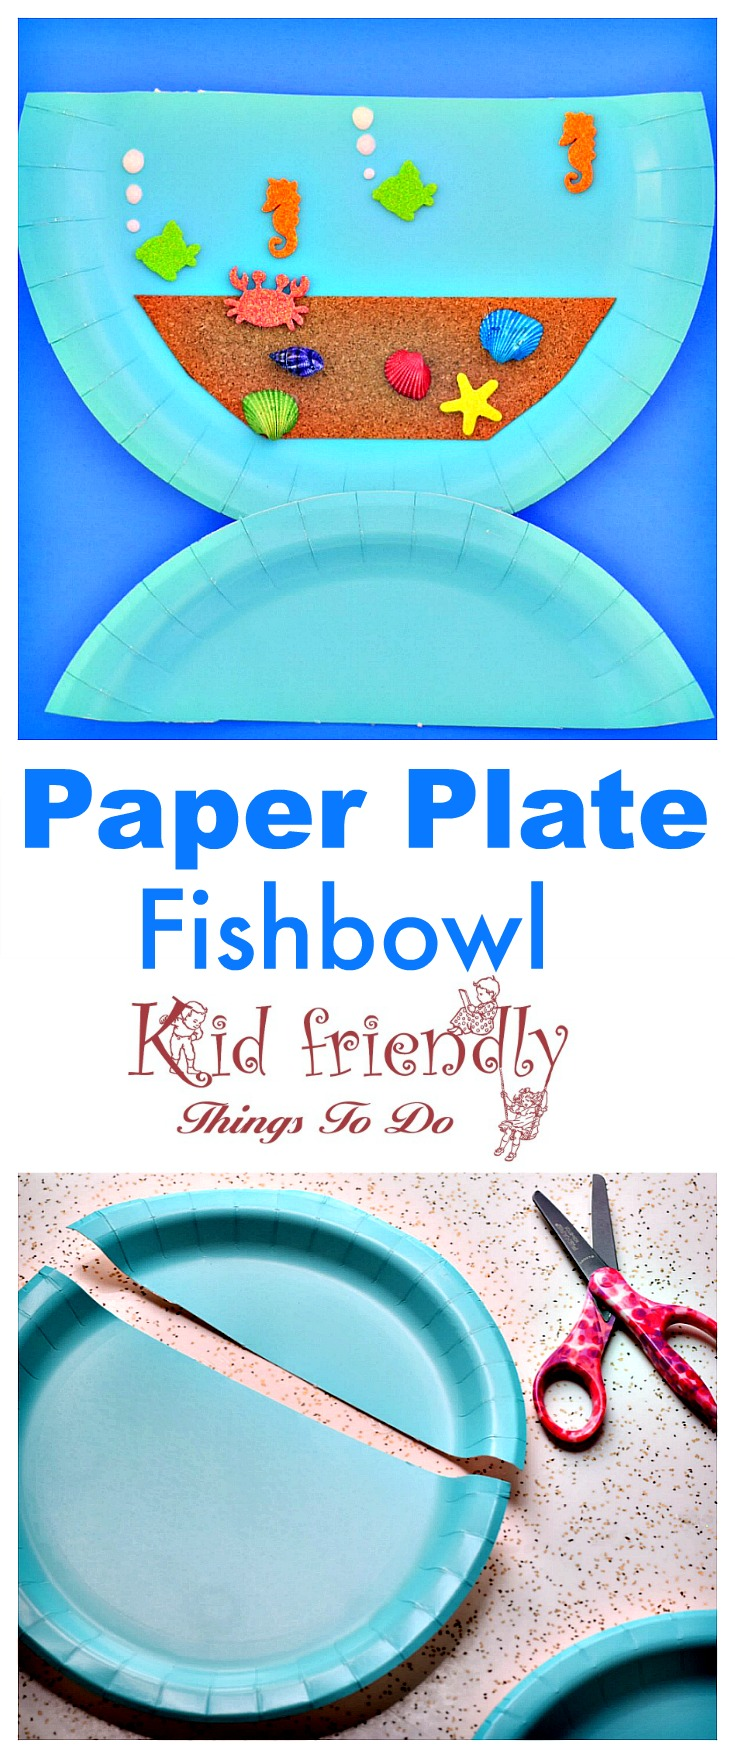 Make a Paper Plate Fishbowl with the Kids This Summer - Easy and Fun - Perfect for rainy days or an ocean birthday party - preschool or school craft, nemo, finding dory and under the sea - www.kidfriendlythingstodo.com